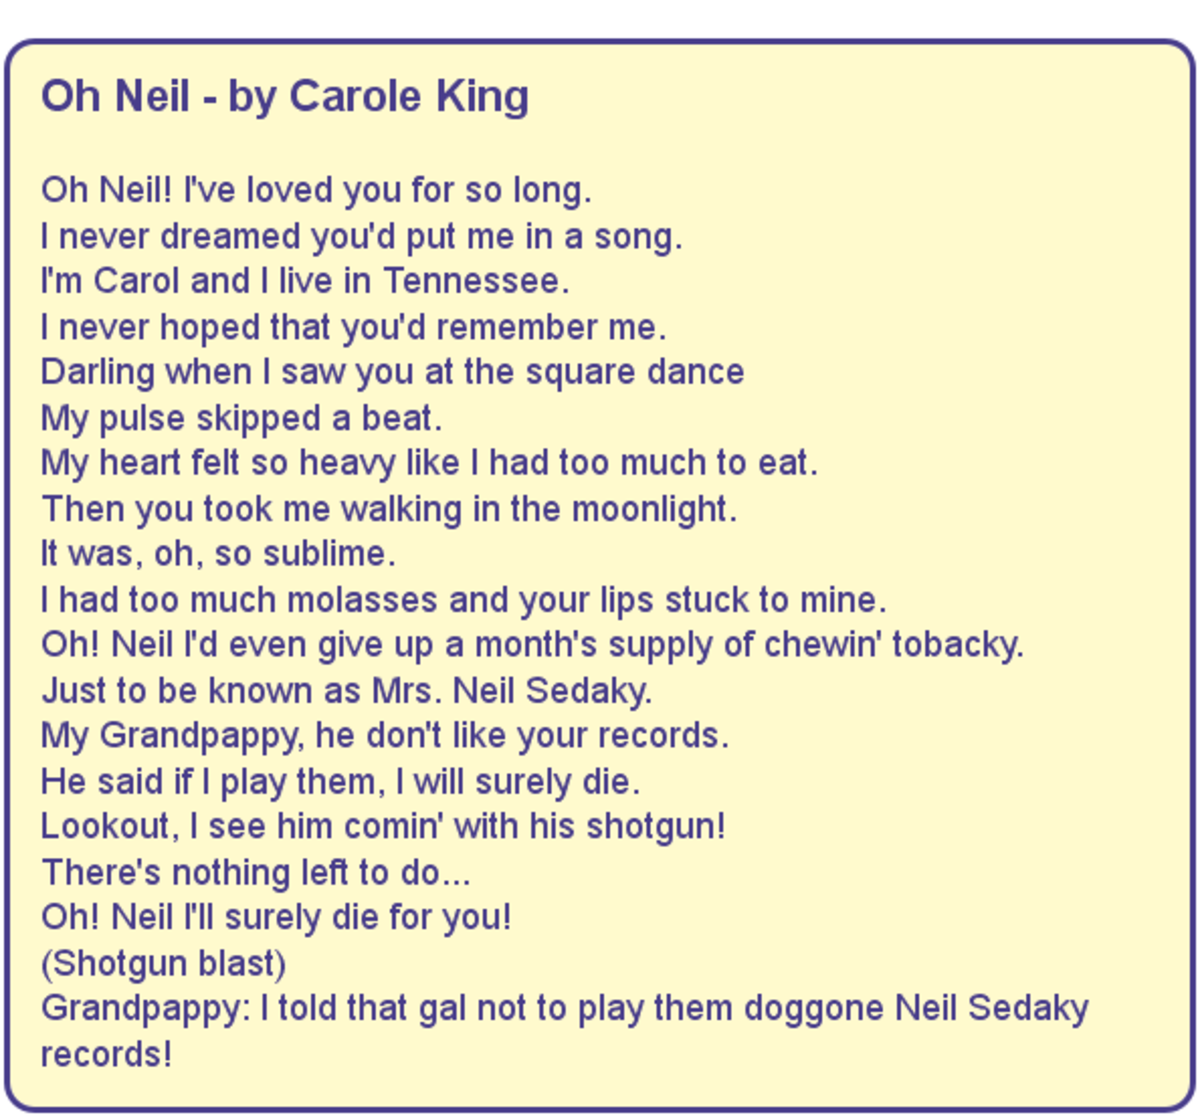 Oh Neil - Lyrics by Carole King